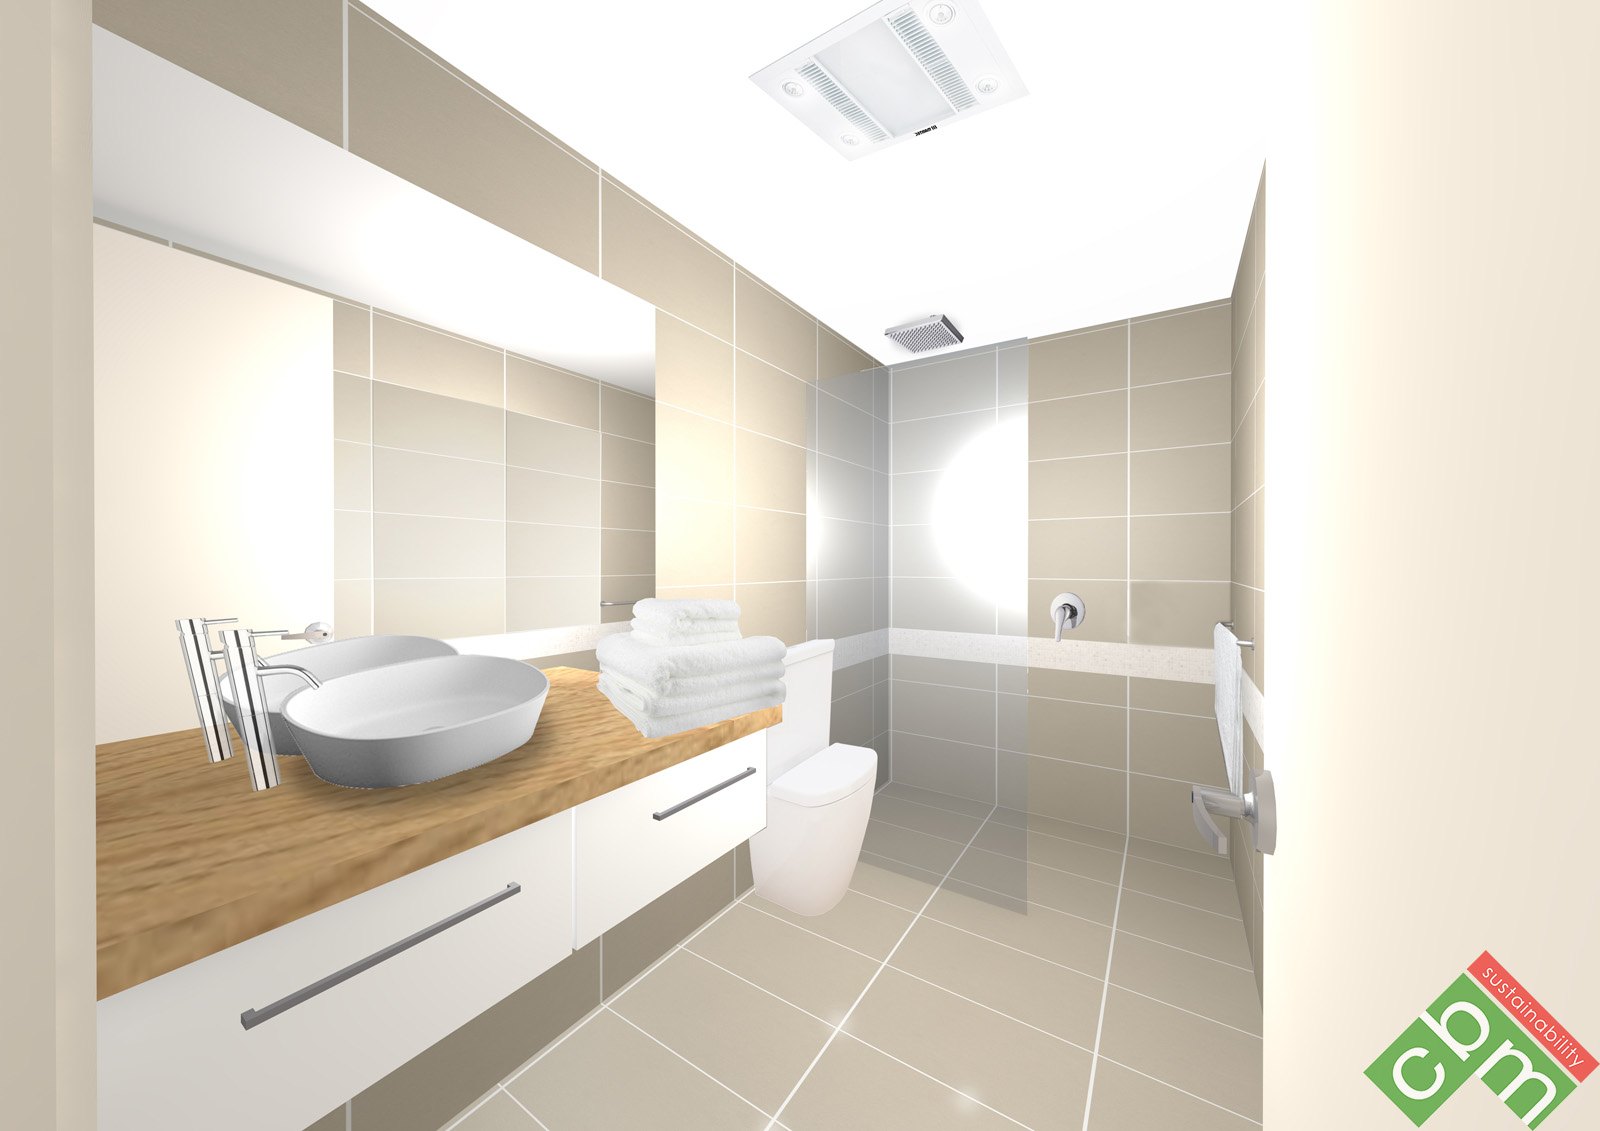 T2 Apartment Type 2 - Bathroom.JPG